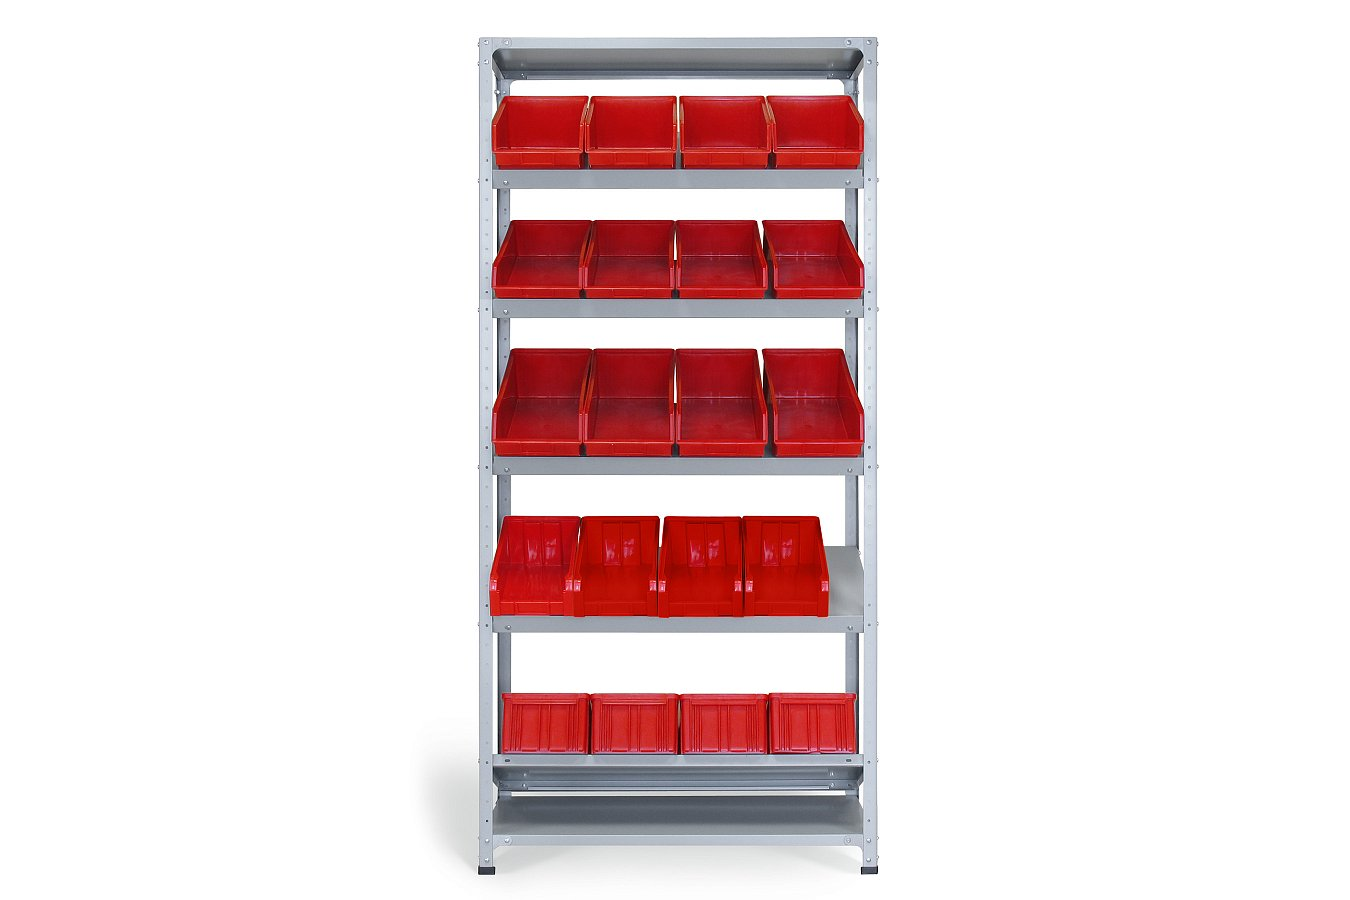 ST-012 Sloping Shelving